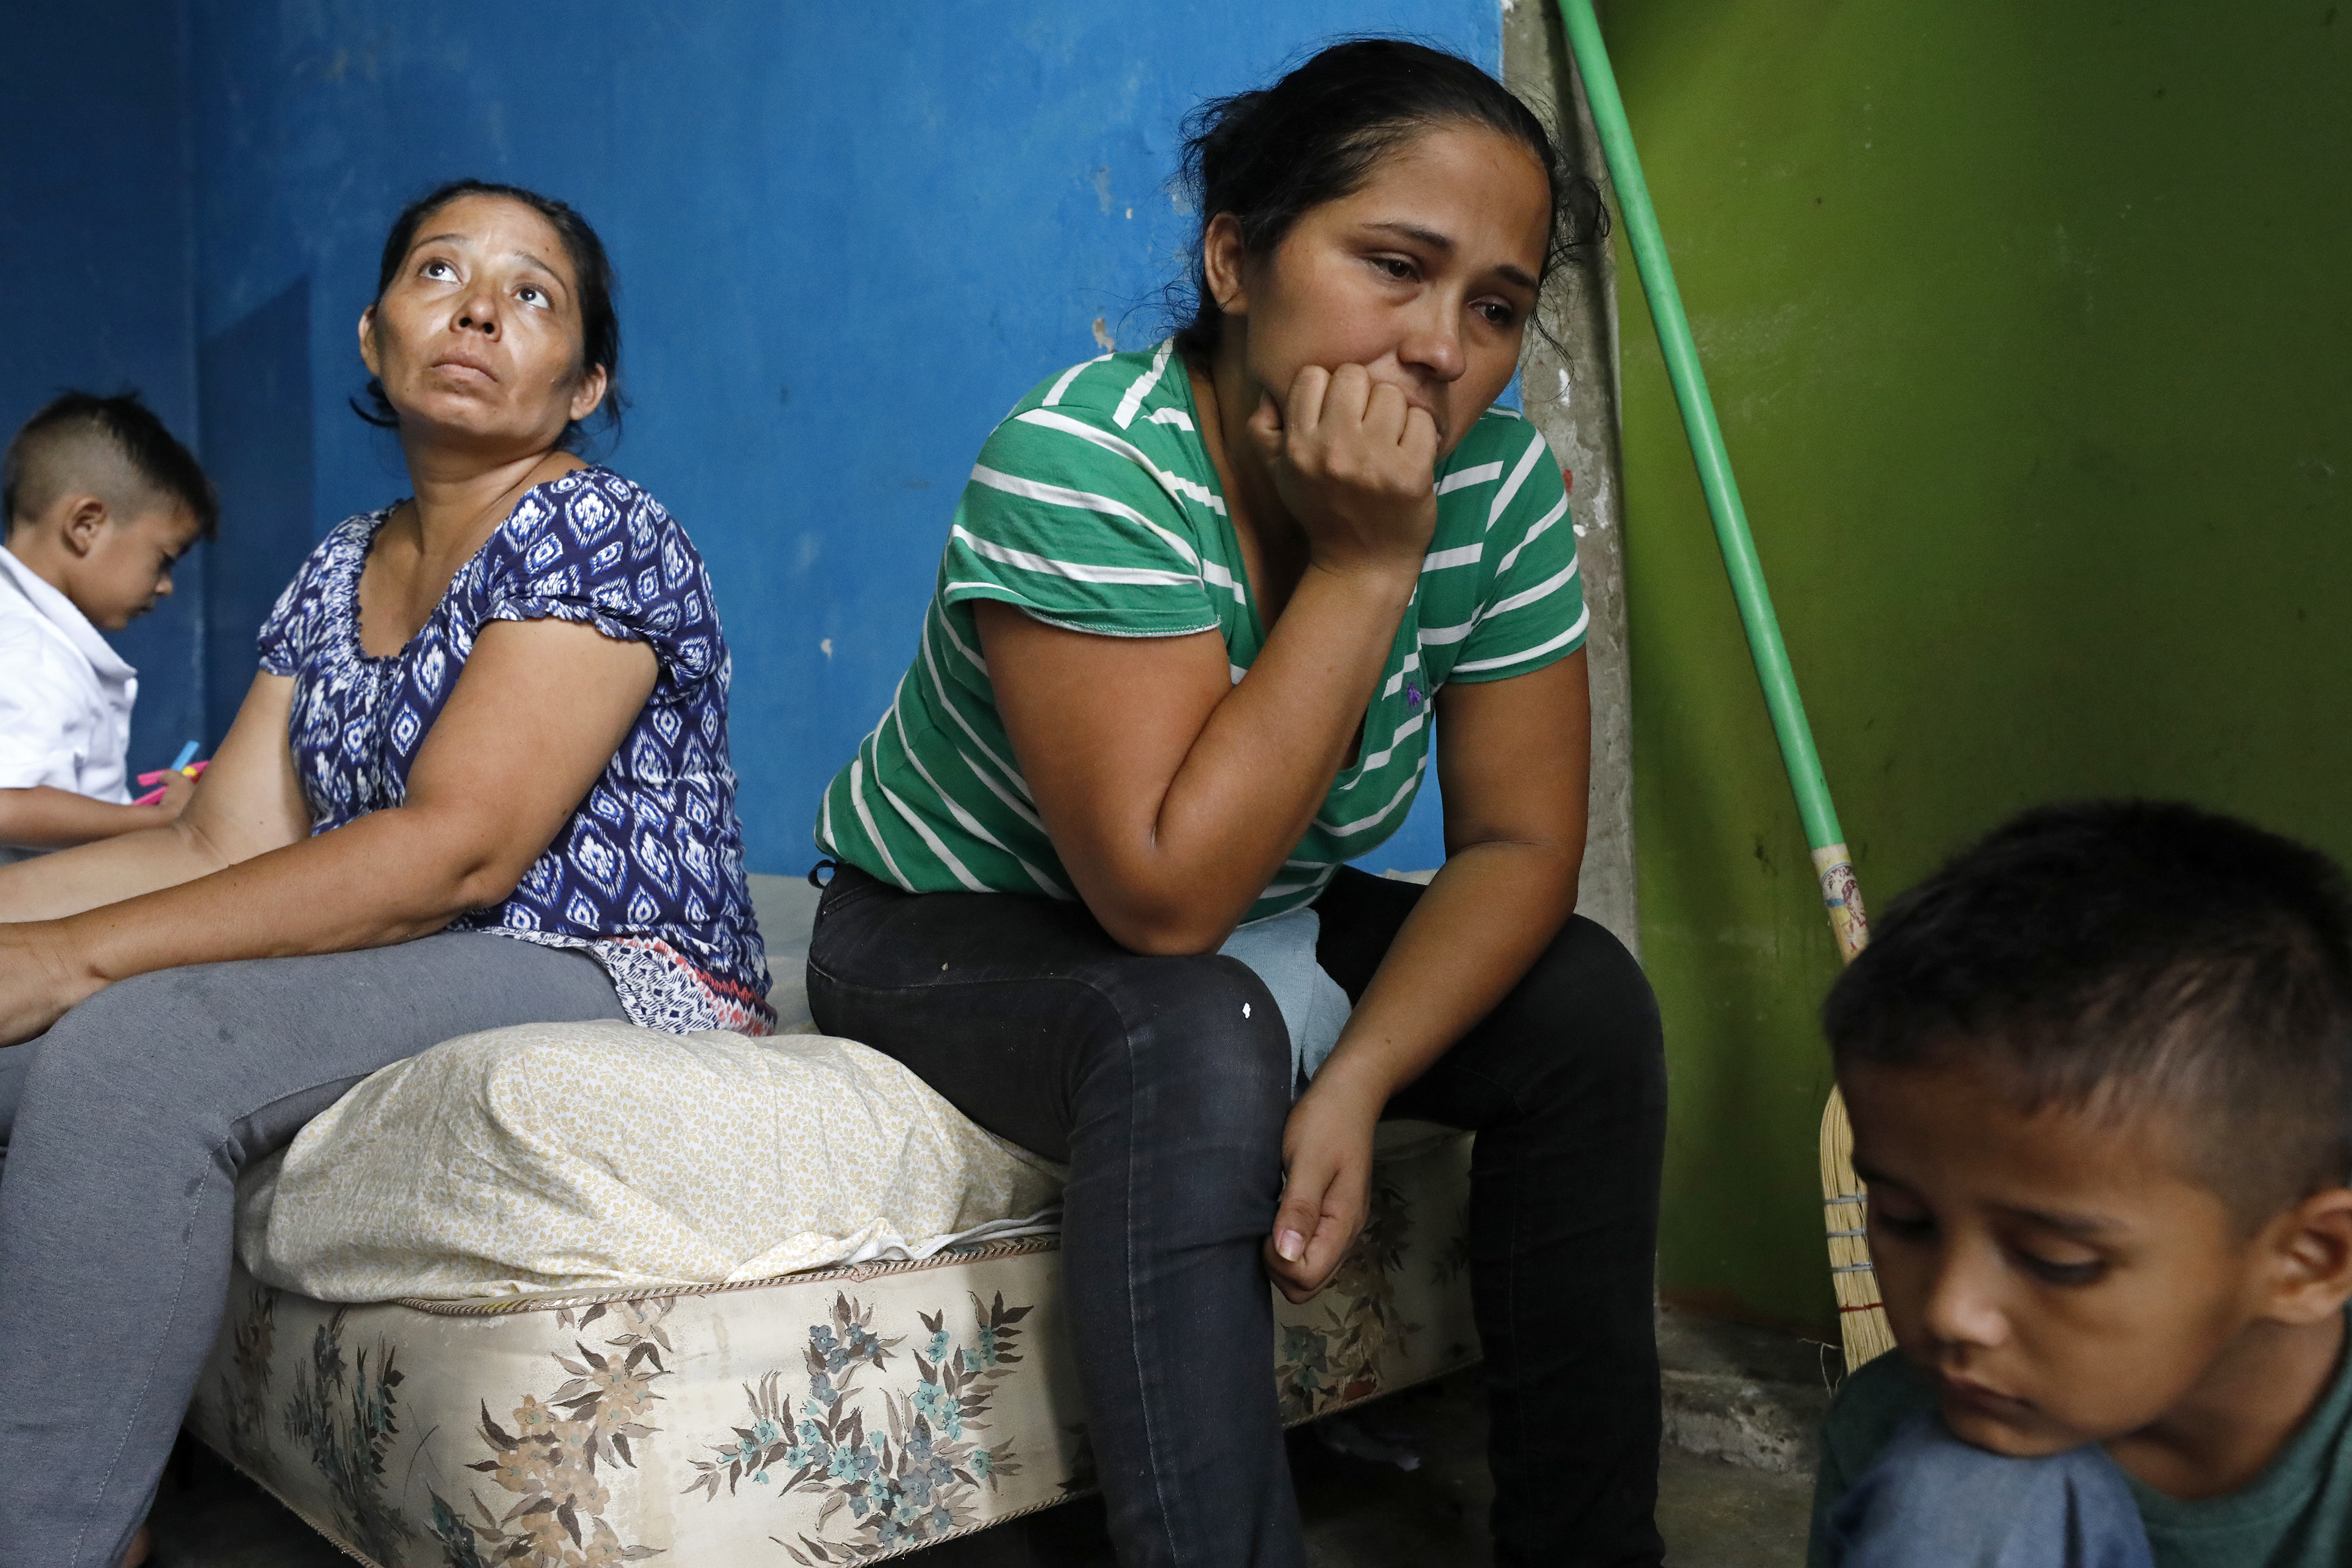 Honduran migrant Mirna Leyva Quintanilla, 32 (center) her son Steven, 6, (right) and other Honduran migrants in the Nuevo Laredo city government shelter, Wednesday Aug. 21, 2019, in Nuevo Laredo, Tamaulipas, Mexico. The migrants were sent back to Mexico under the Migrant Protection Protocols.